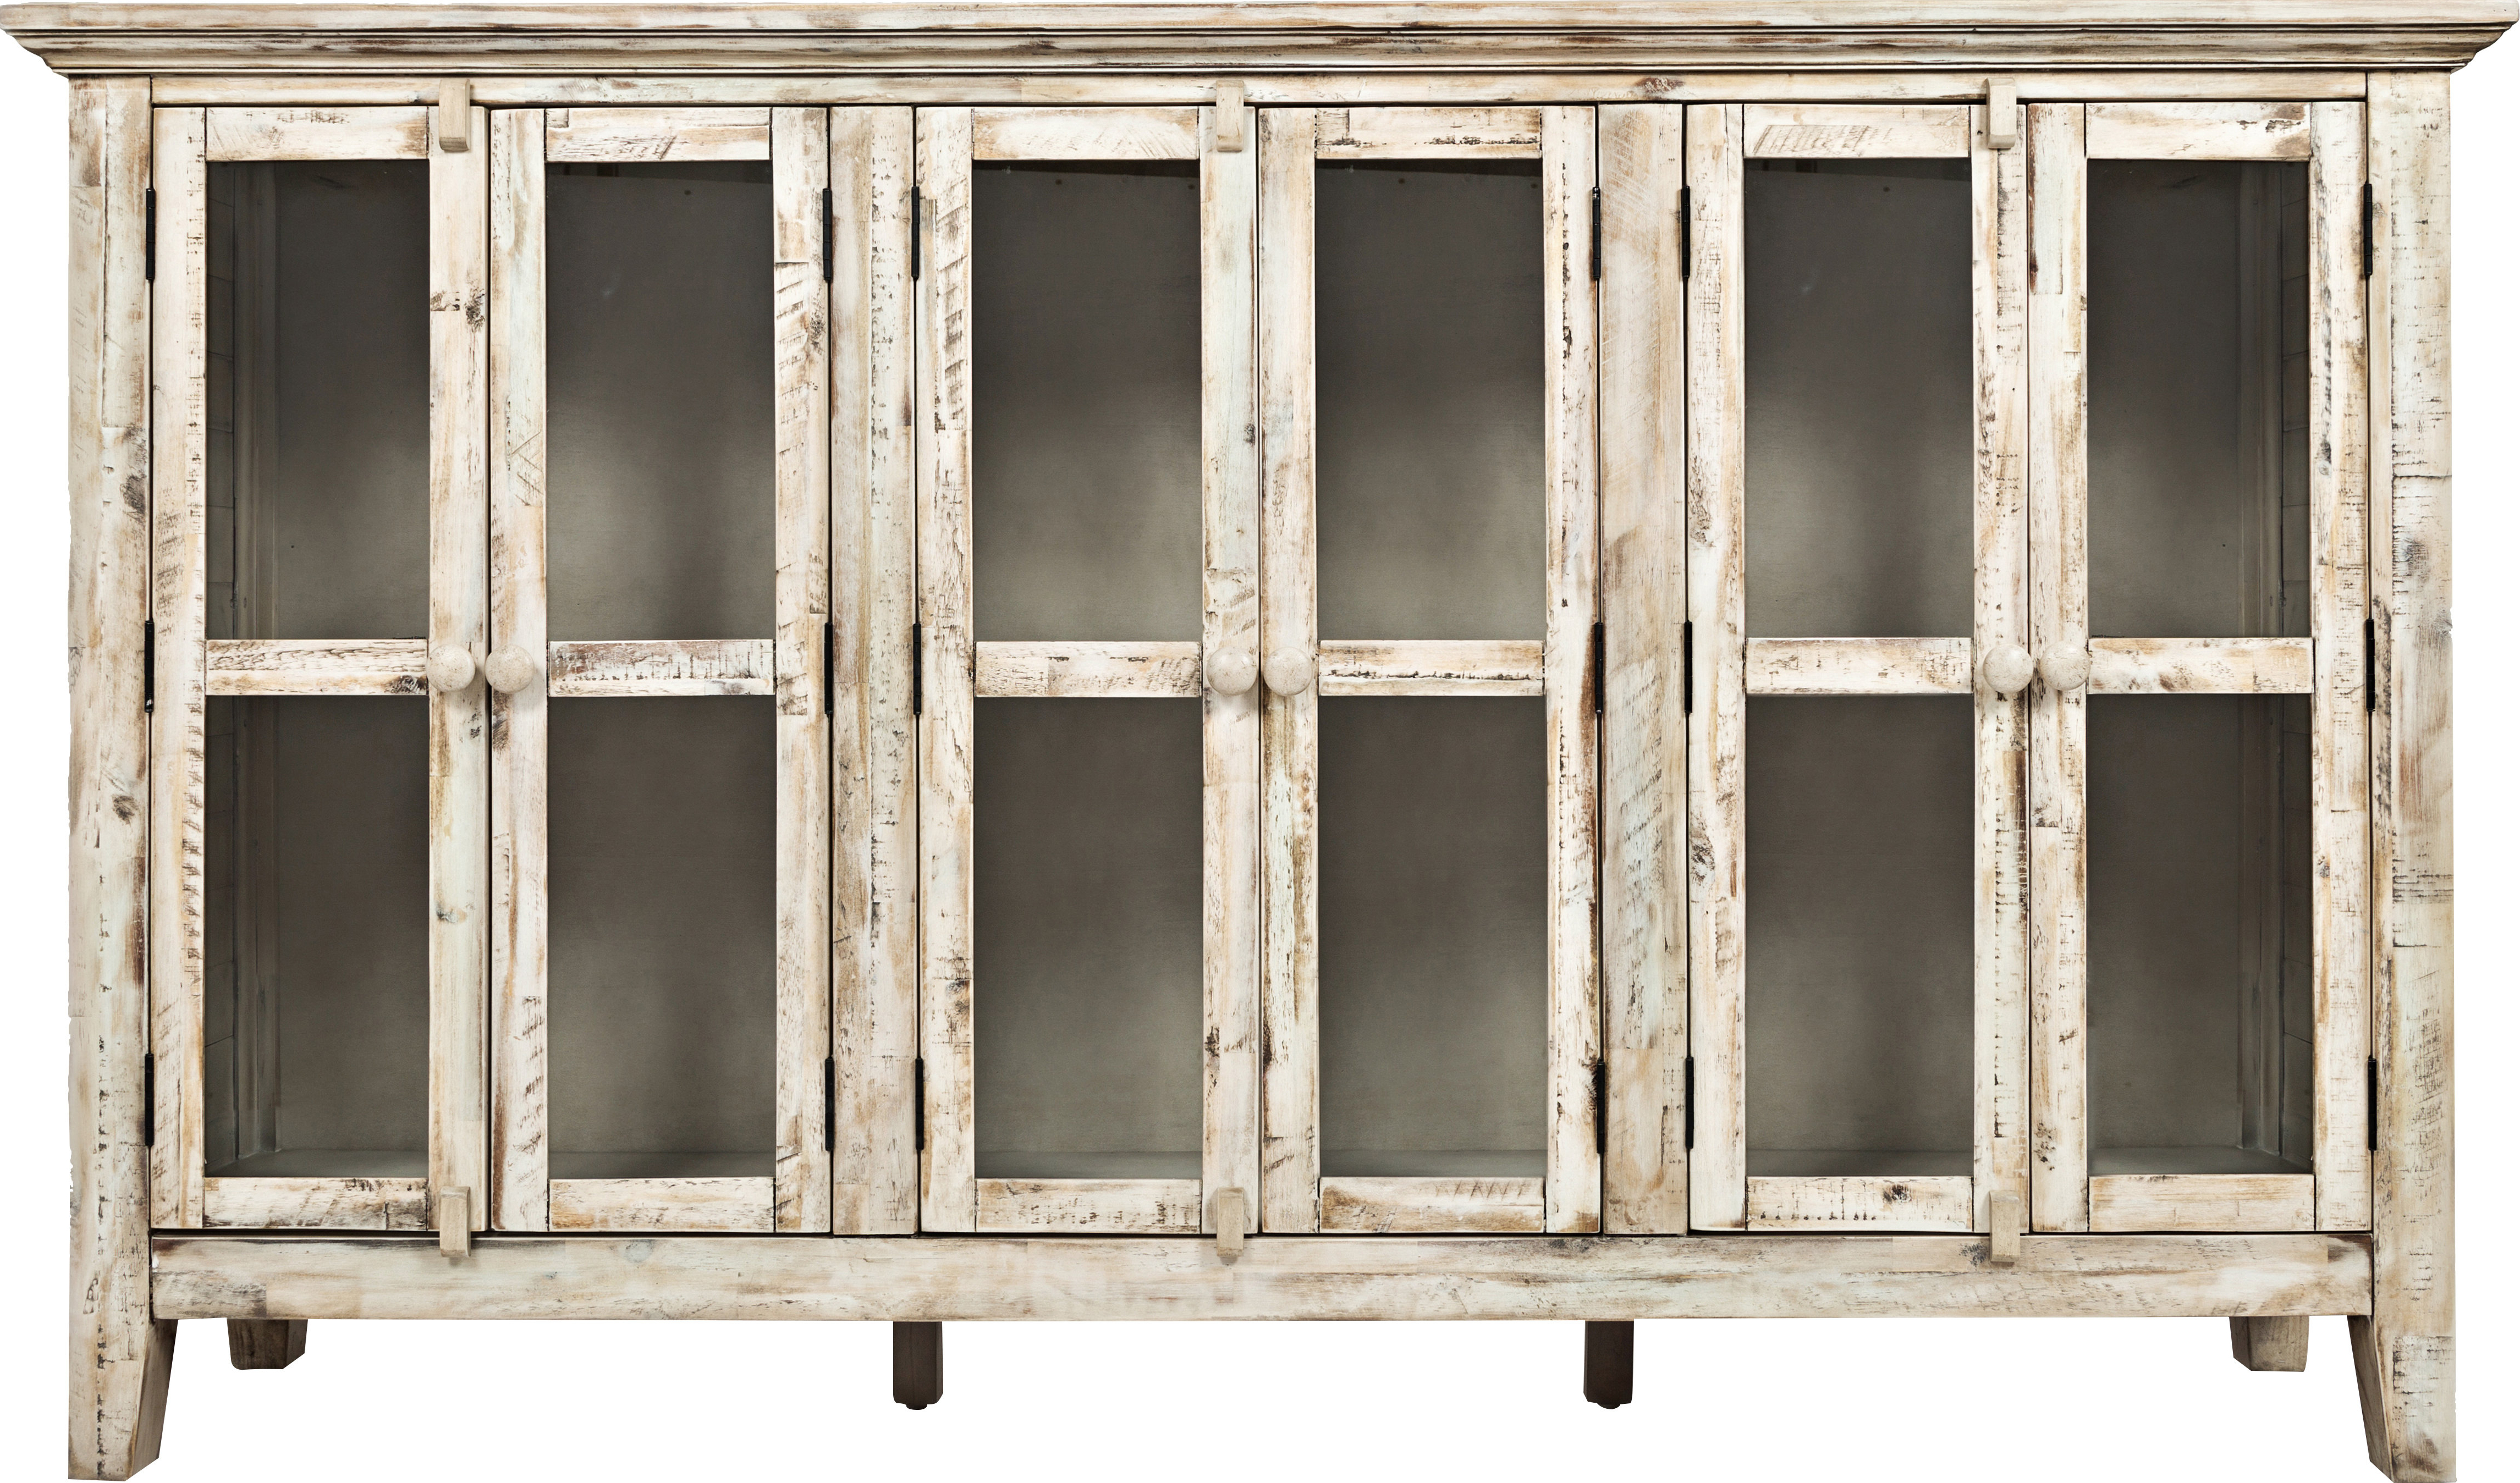 Farmhouse & Rustic Sideboards & Buffets | Birch Lane With Kattie 4 Door Cabinets (View 9 of 20)